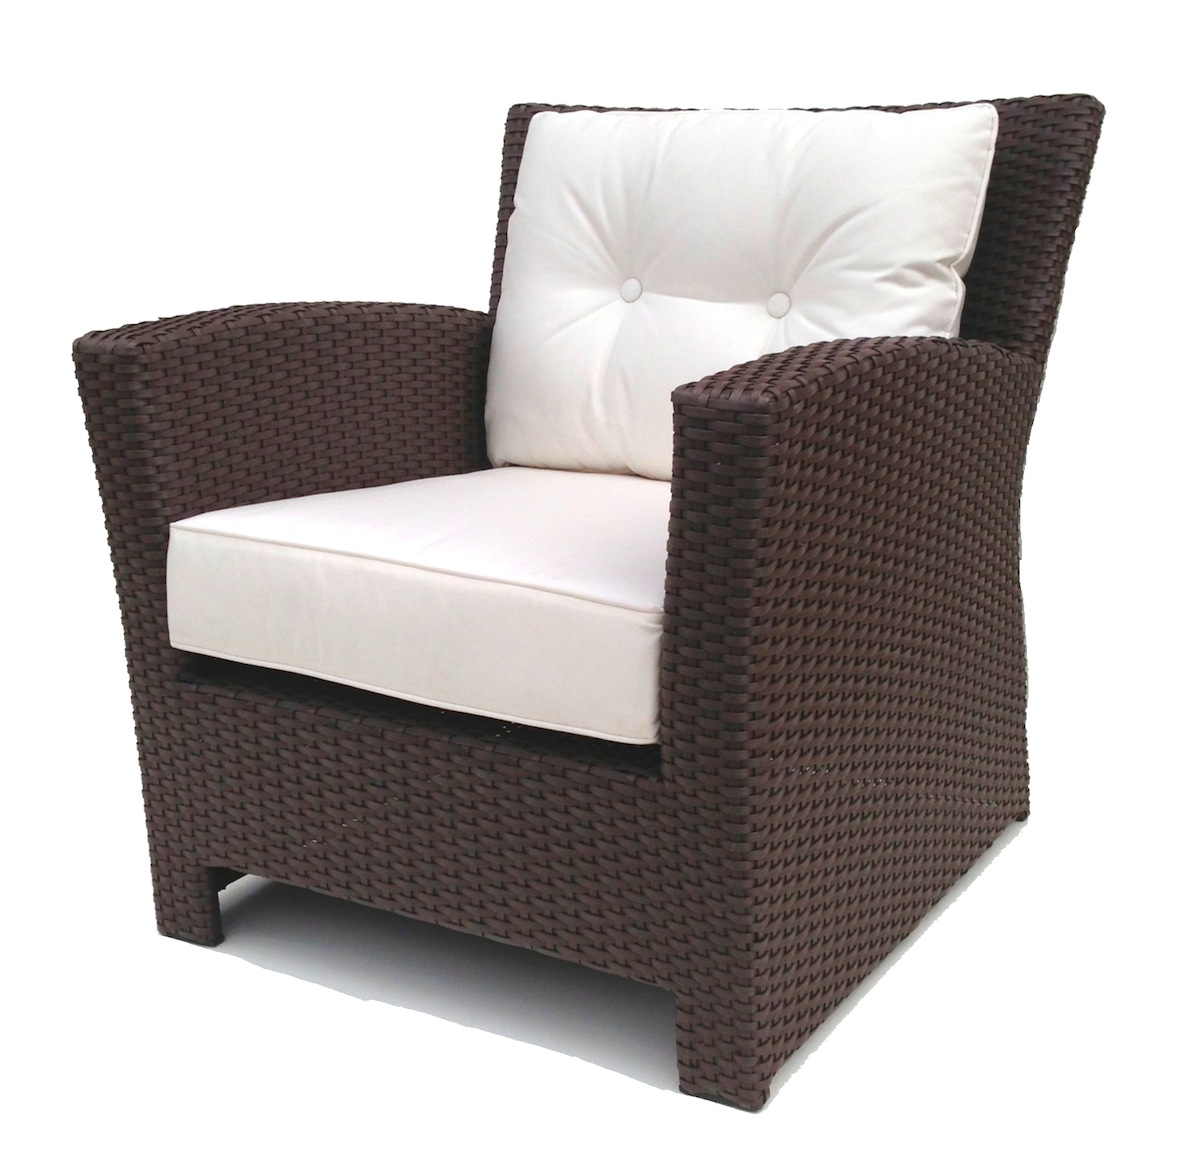 Fashionable wicker chairs outdoor wicker club chair hvaufpm